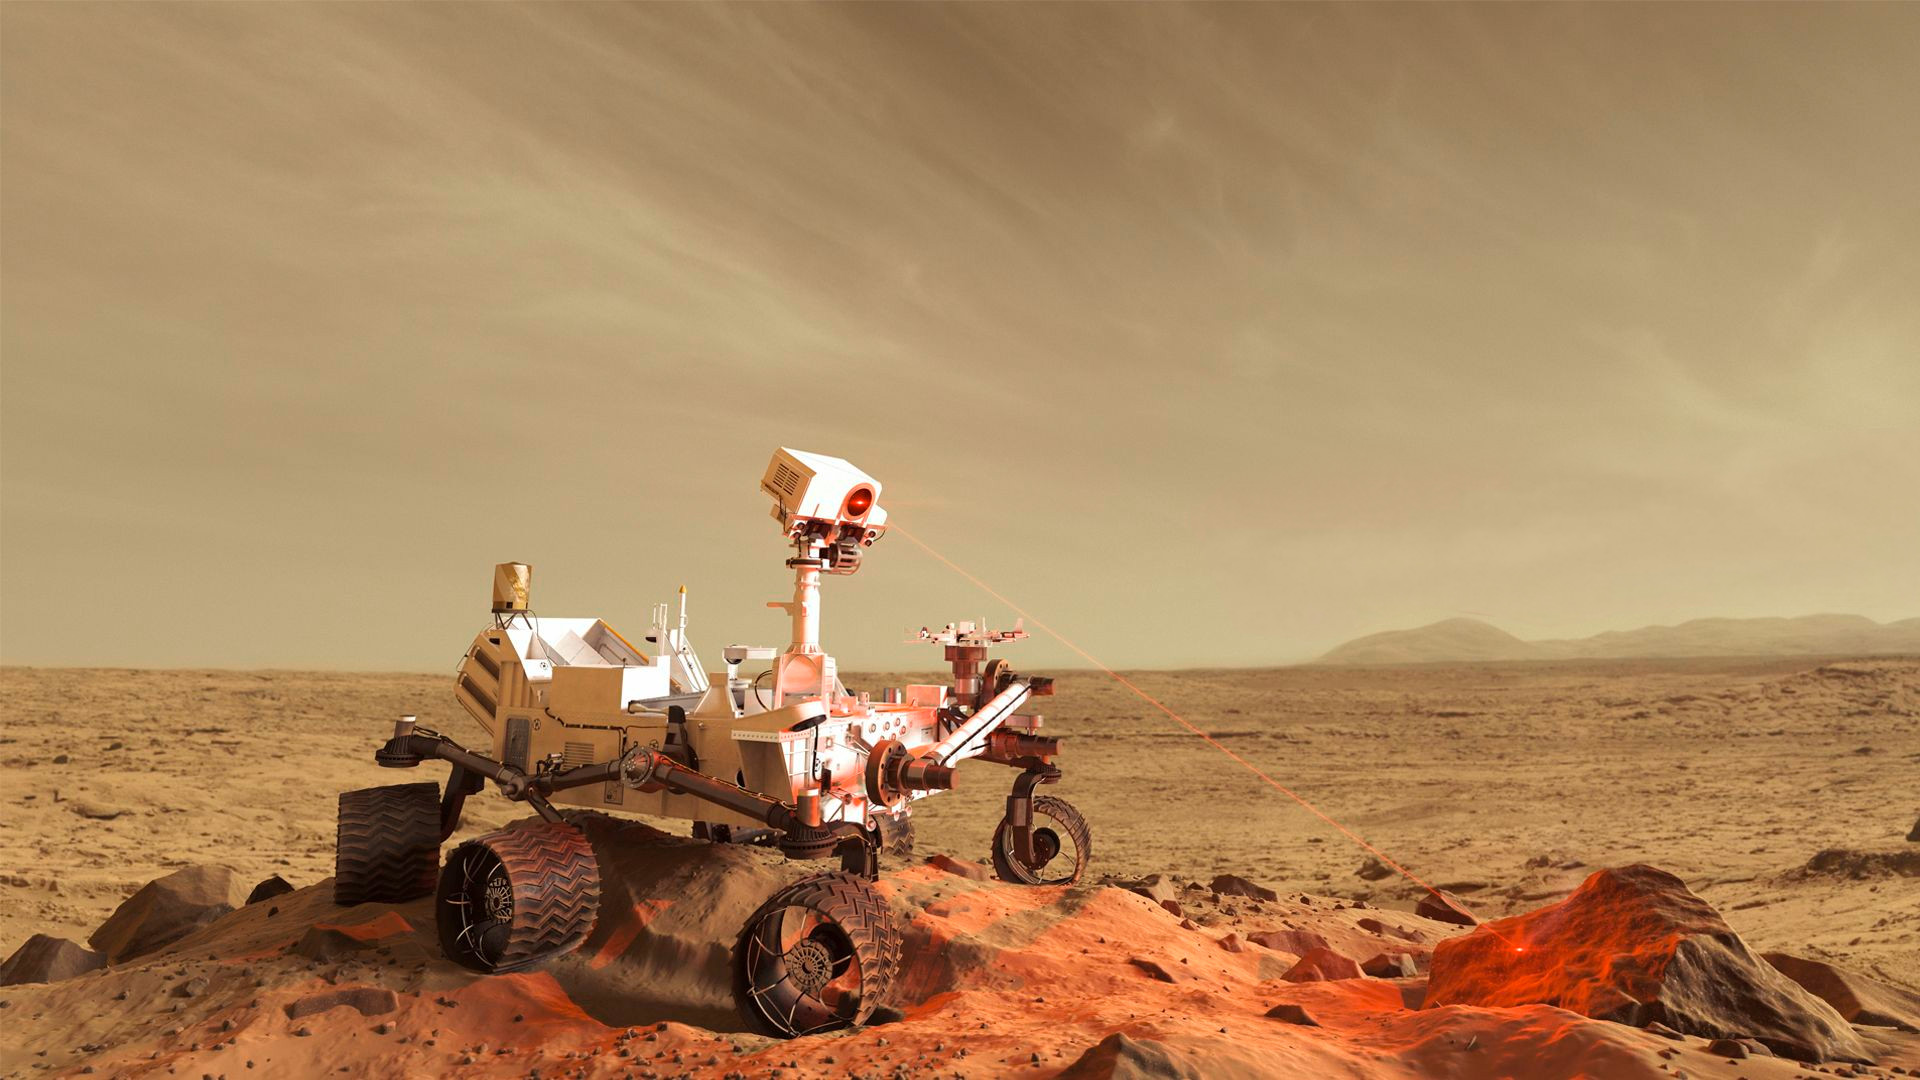 Res: 1920x1080, Mars rover finds another rock